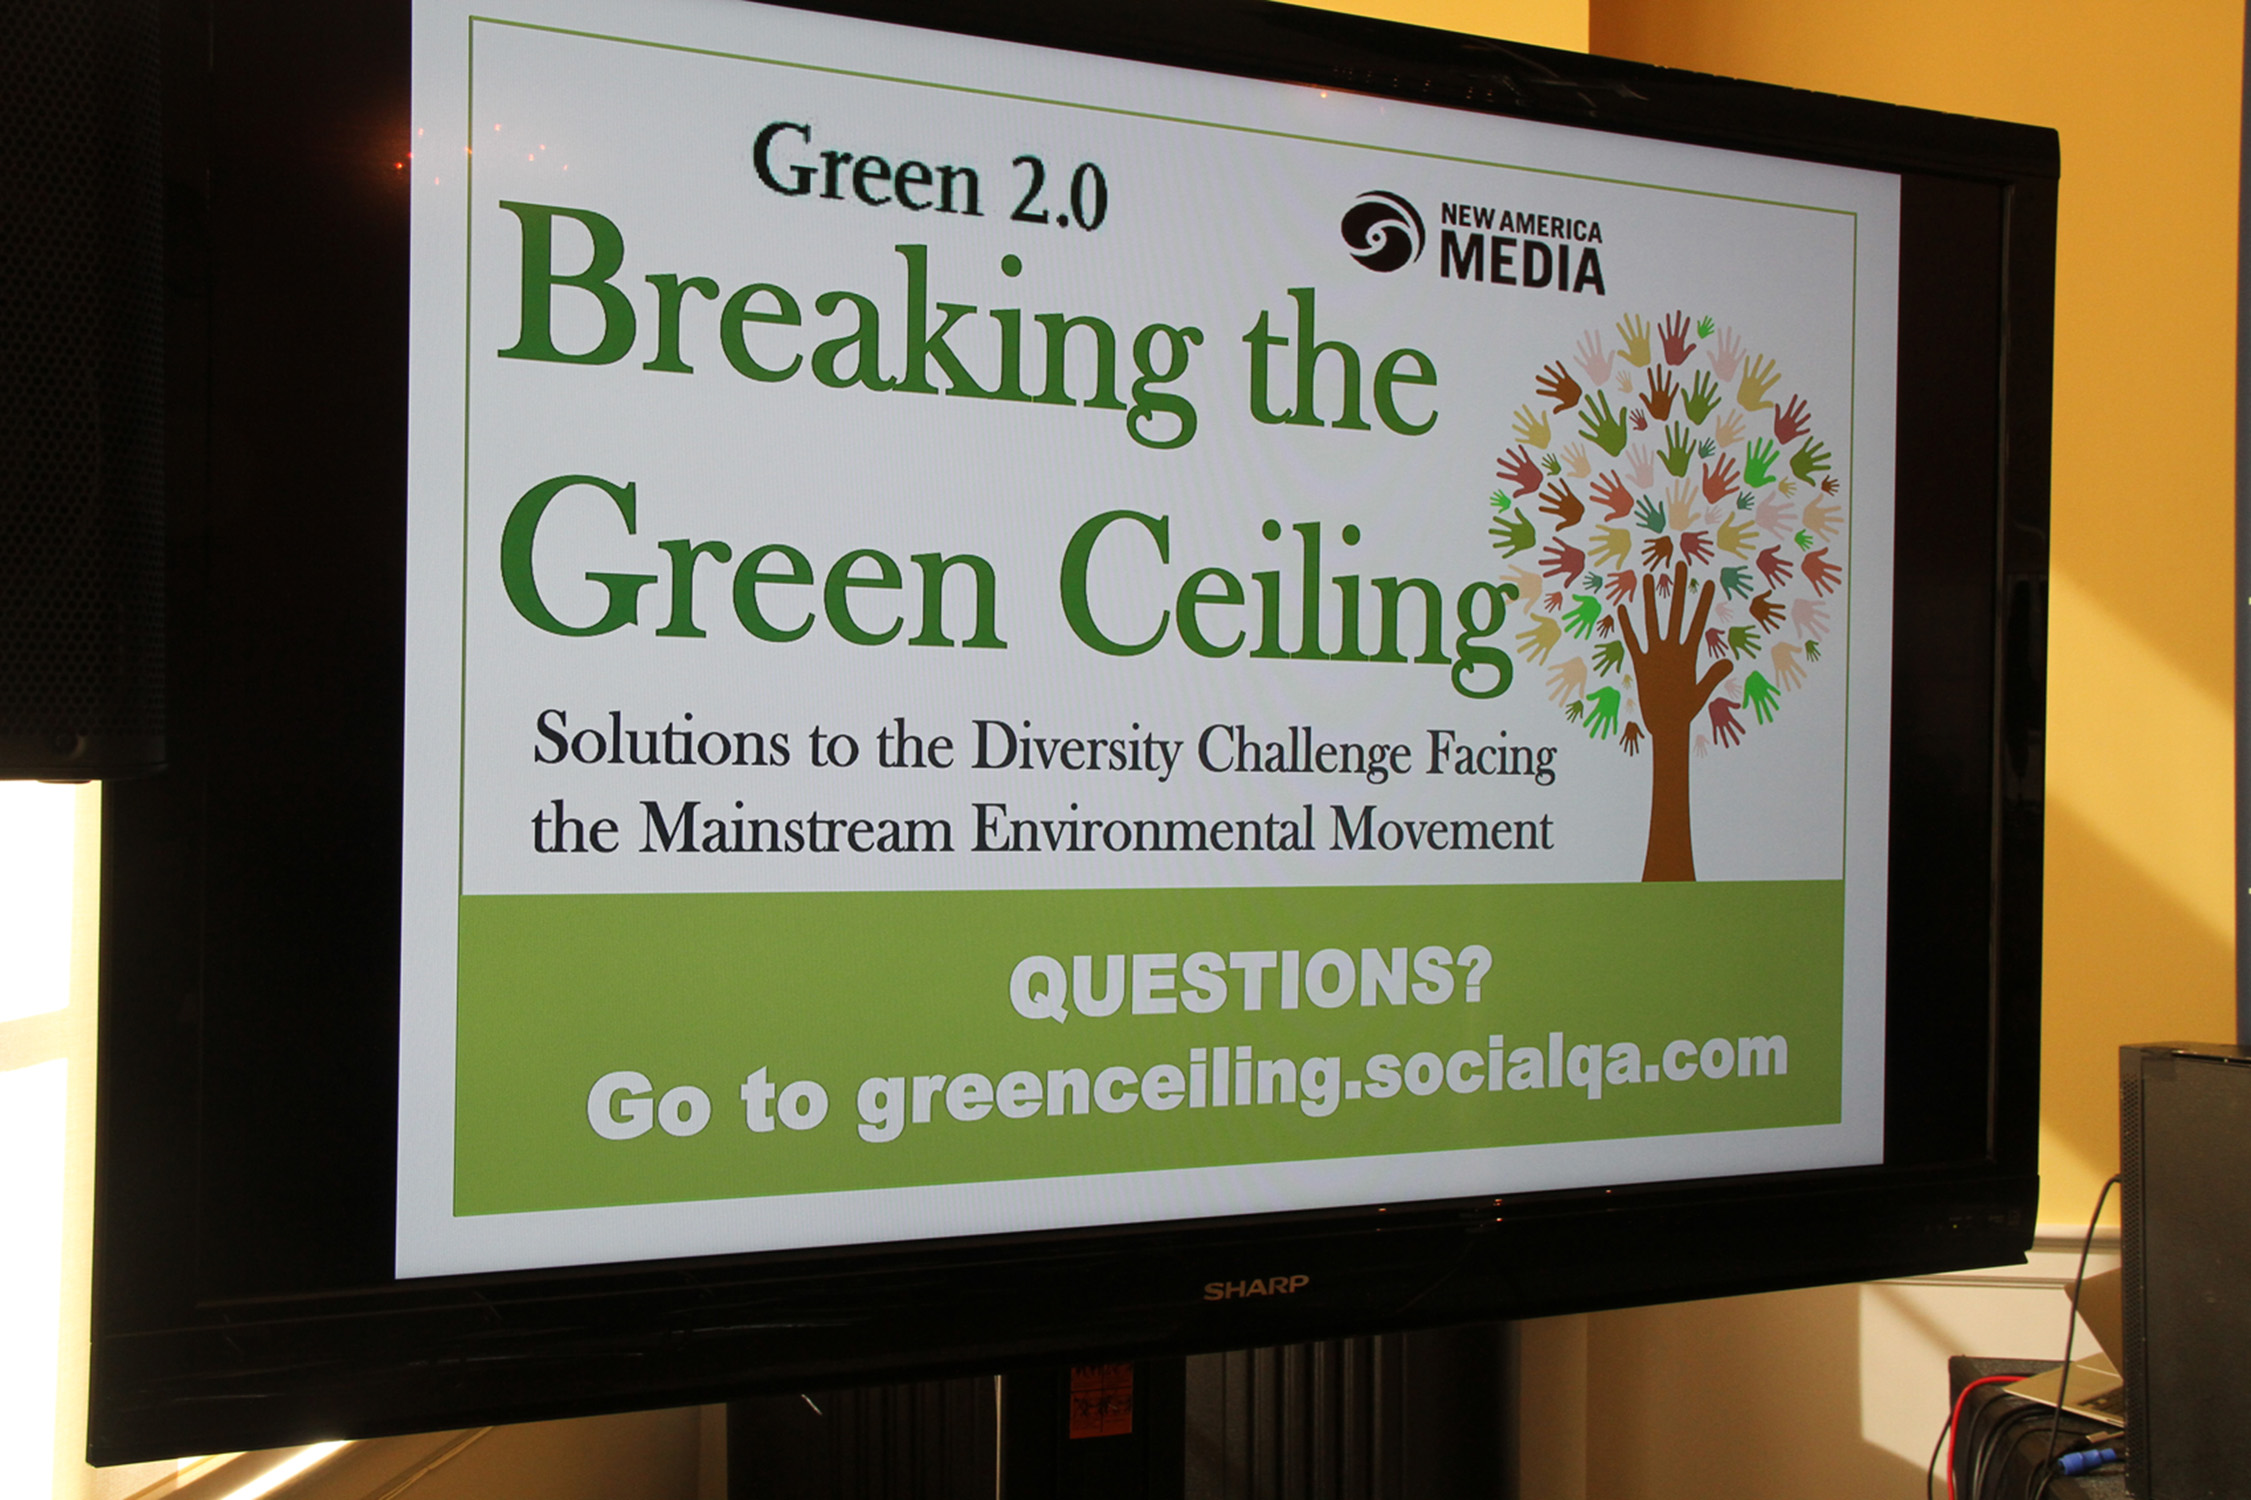 Green 2.0 Wants to Know: How Diverse Is Your Staff?